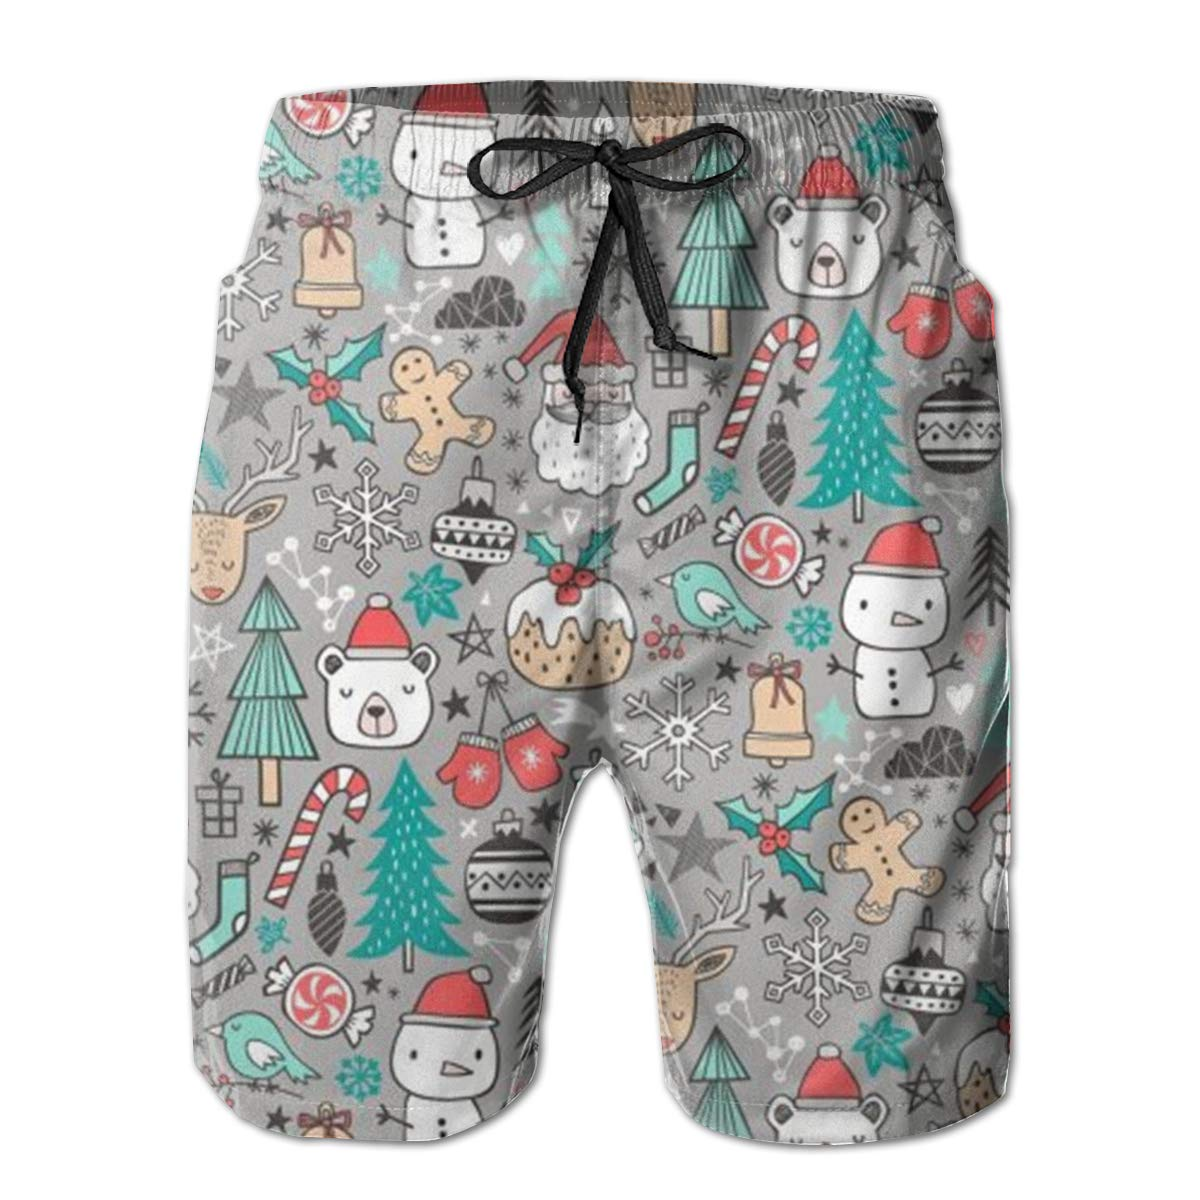 TR2YU7YT Xmas Christmas Winter Holiday Casual Mens Swim Trunks Quick Dry Printed Beach Shorts Summer Boardshorts Bathing Suits with Mesh Lining